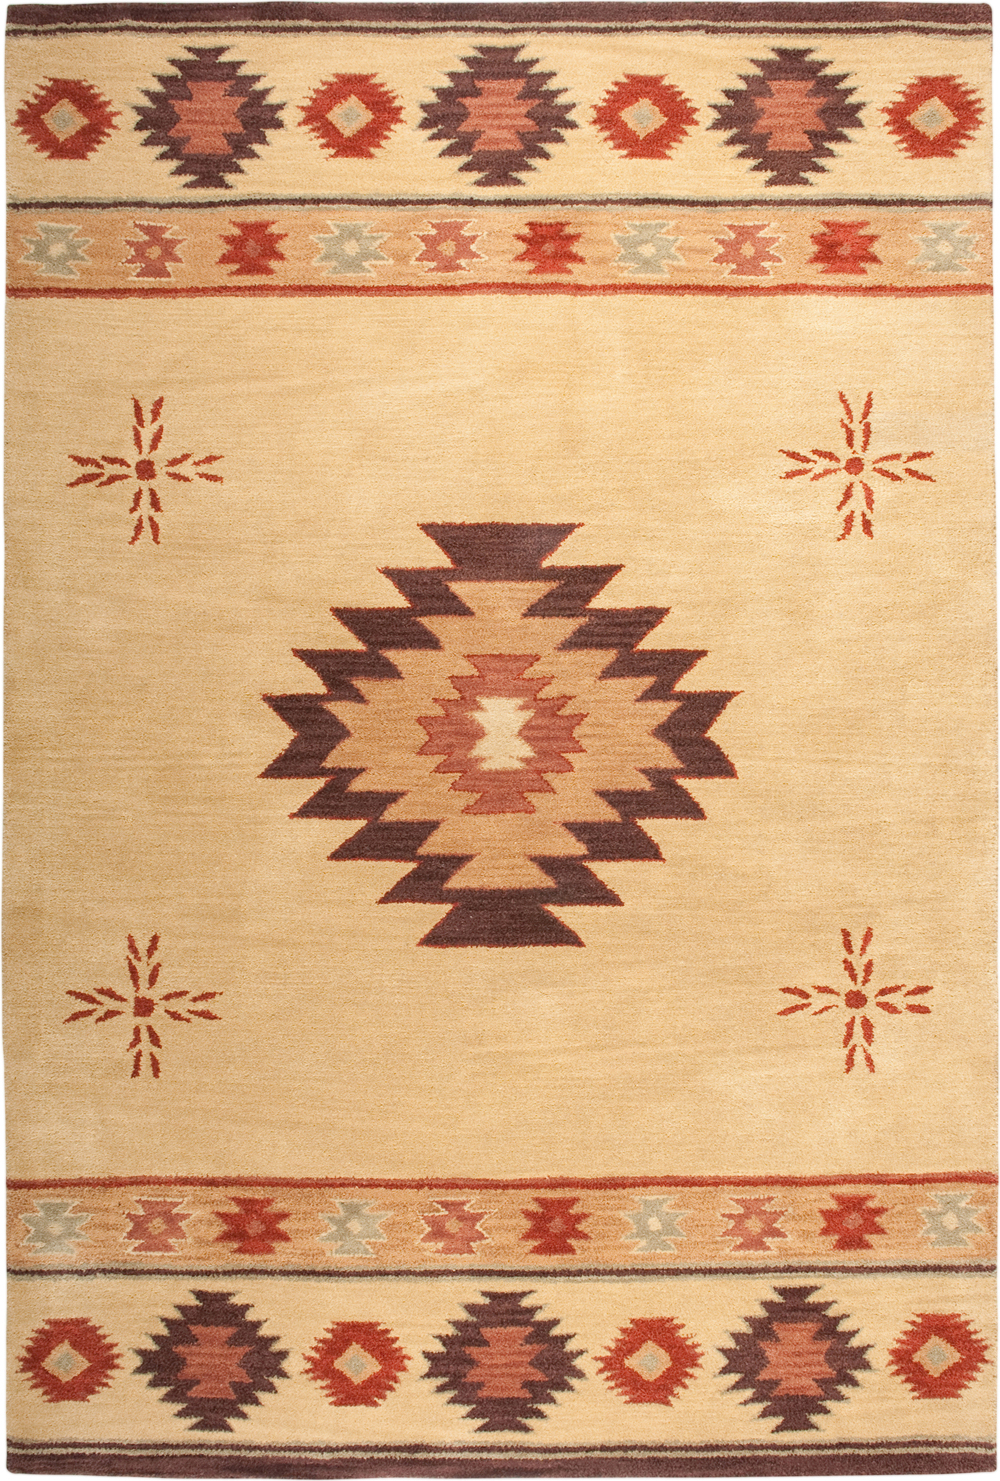 rug products sonoma southwest copper fe colored new woodwaves southwestern rugs mexico santa